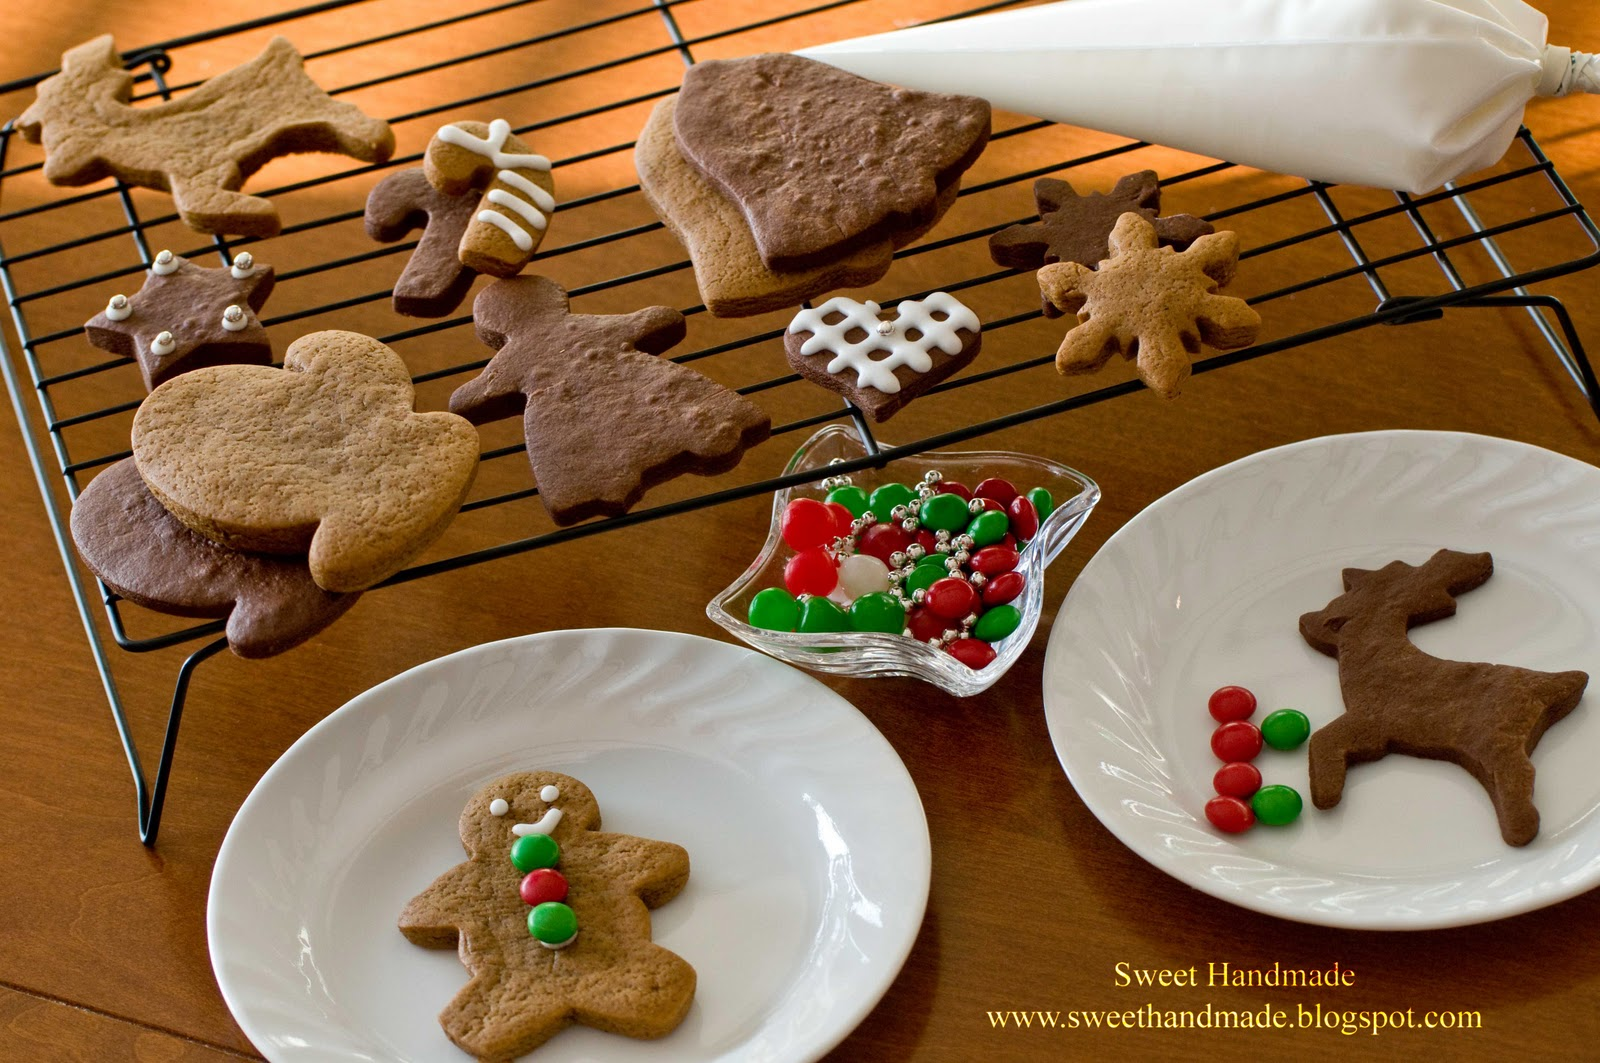 Sweet Handmade Cookies Holiday Cookie Decorating Kit